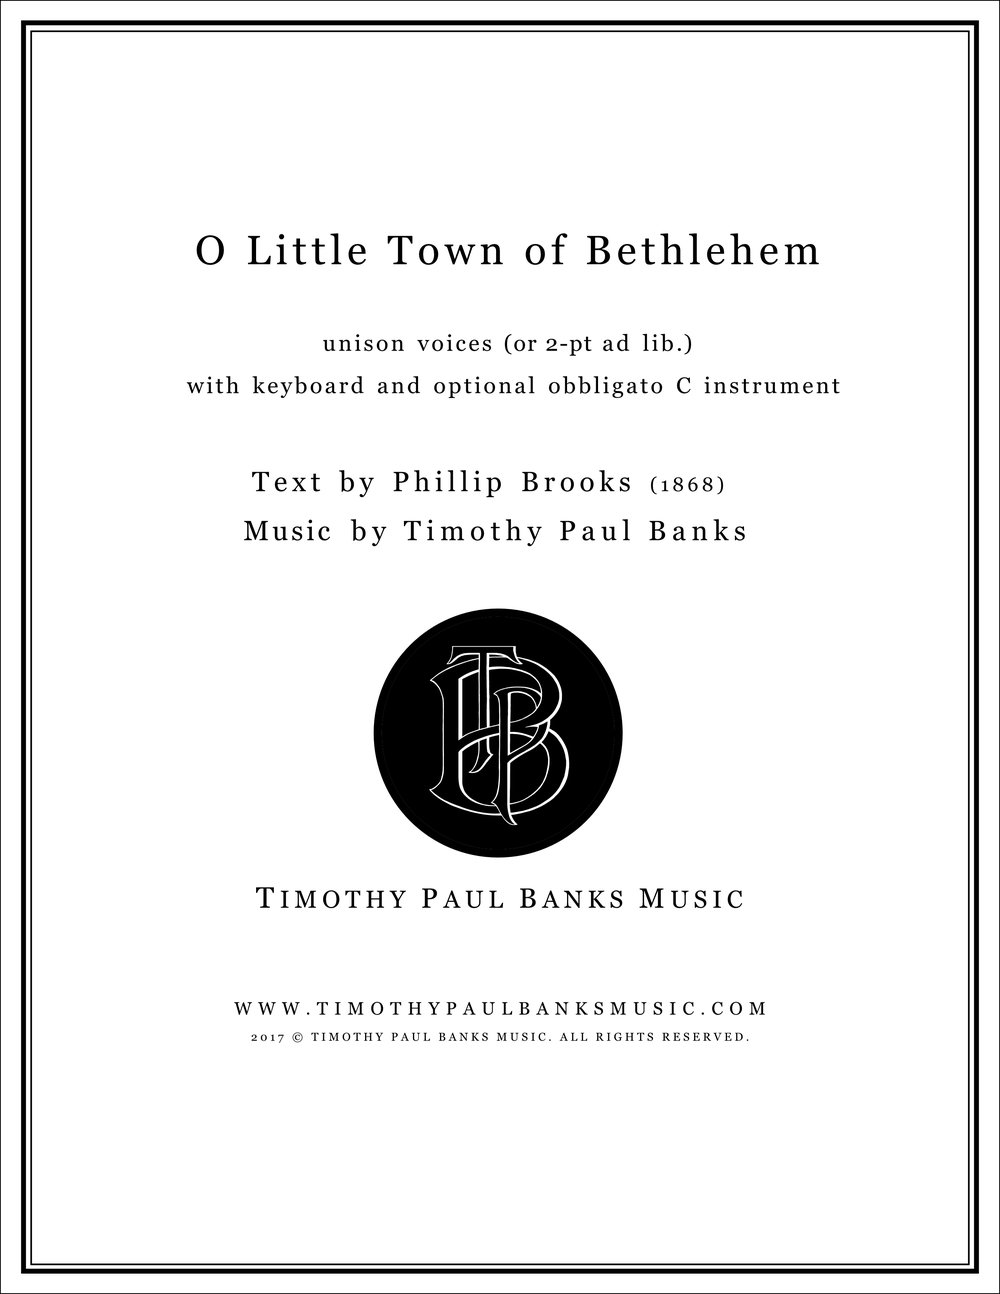 O Little Town of Bethelhem